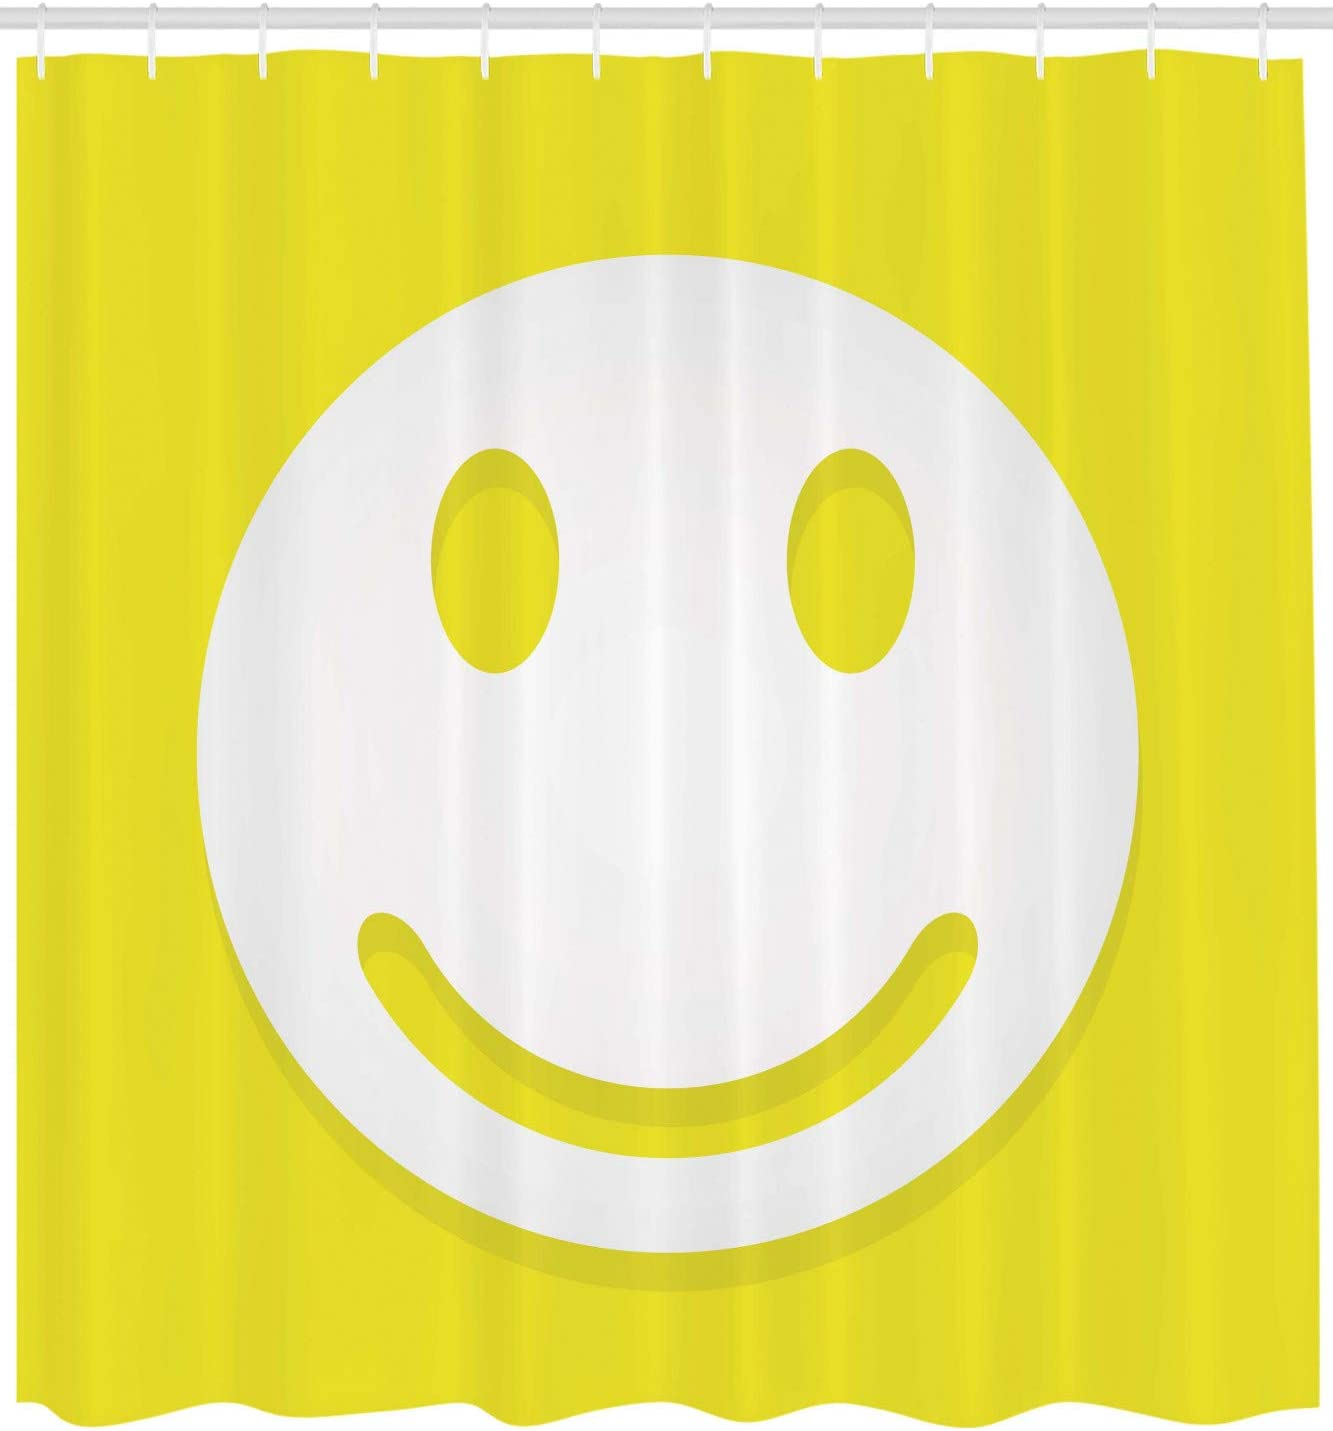 Ambesonne Yellow Shower Curtain Rise Wake Up Positive Optimistic Life Message Big Smiling Happy Face Artwork Cloth Fabric Bathroom Decor Set With Hooks 105 Extra Wide Yellow And White Home